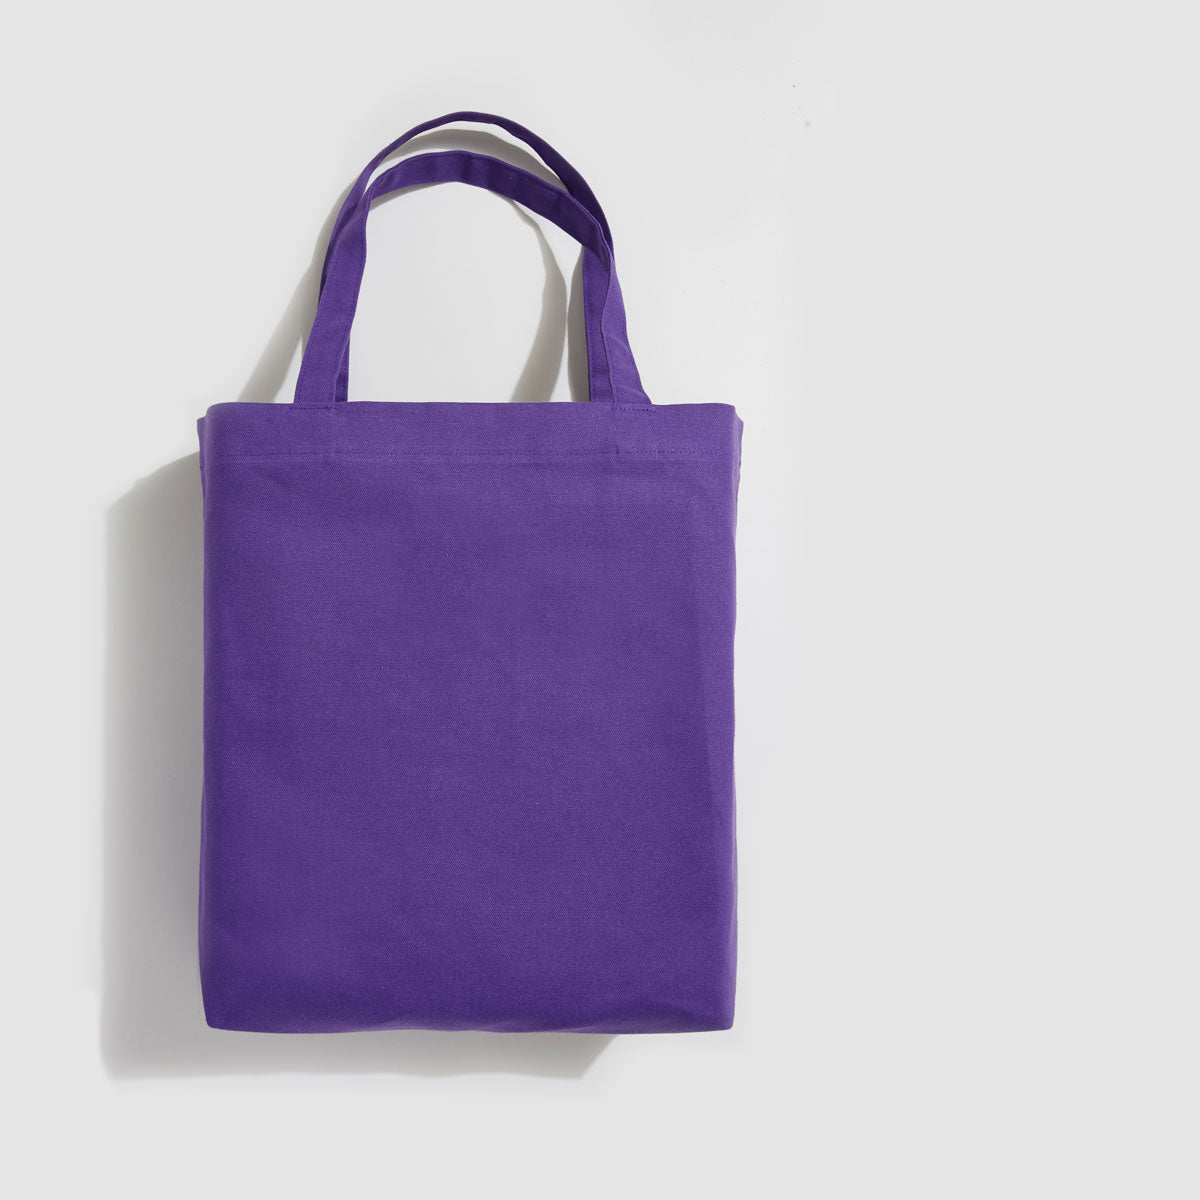 Grand tote violet blank